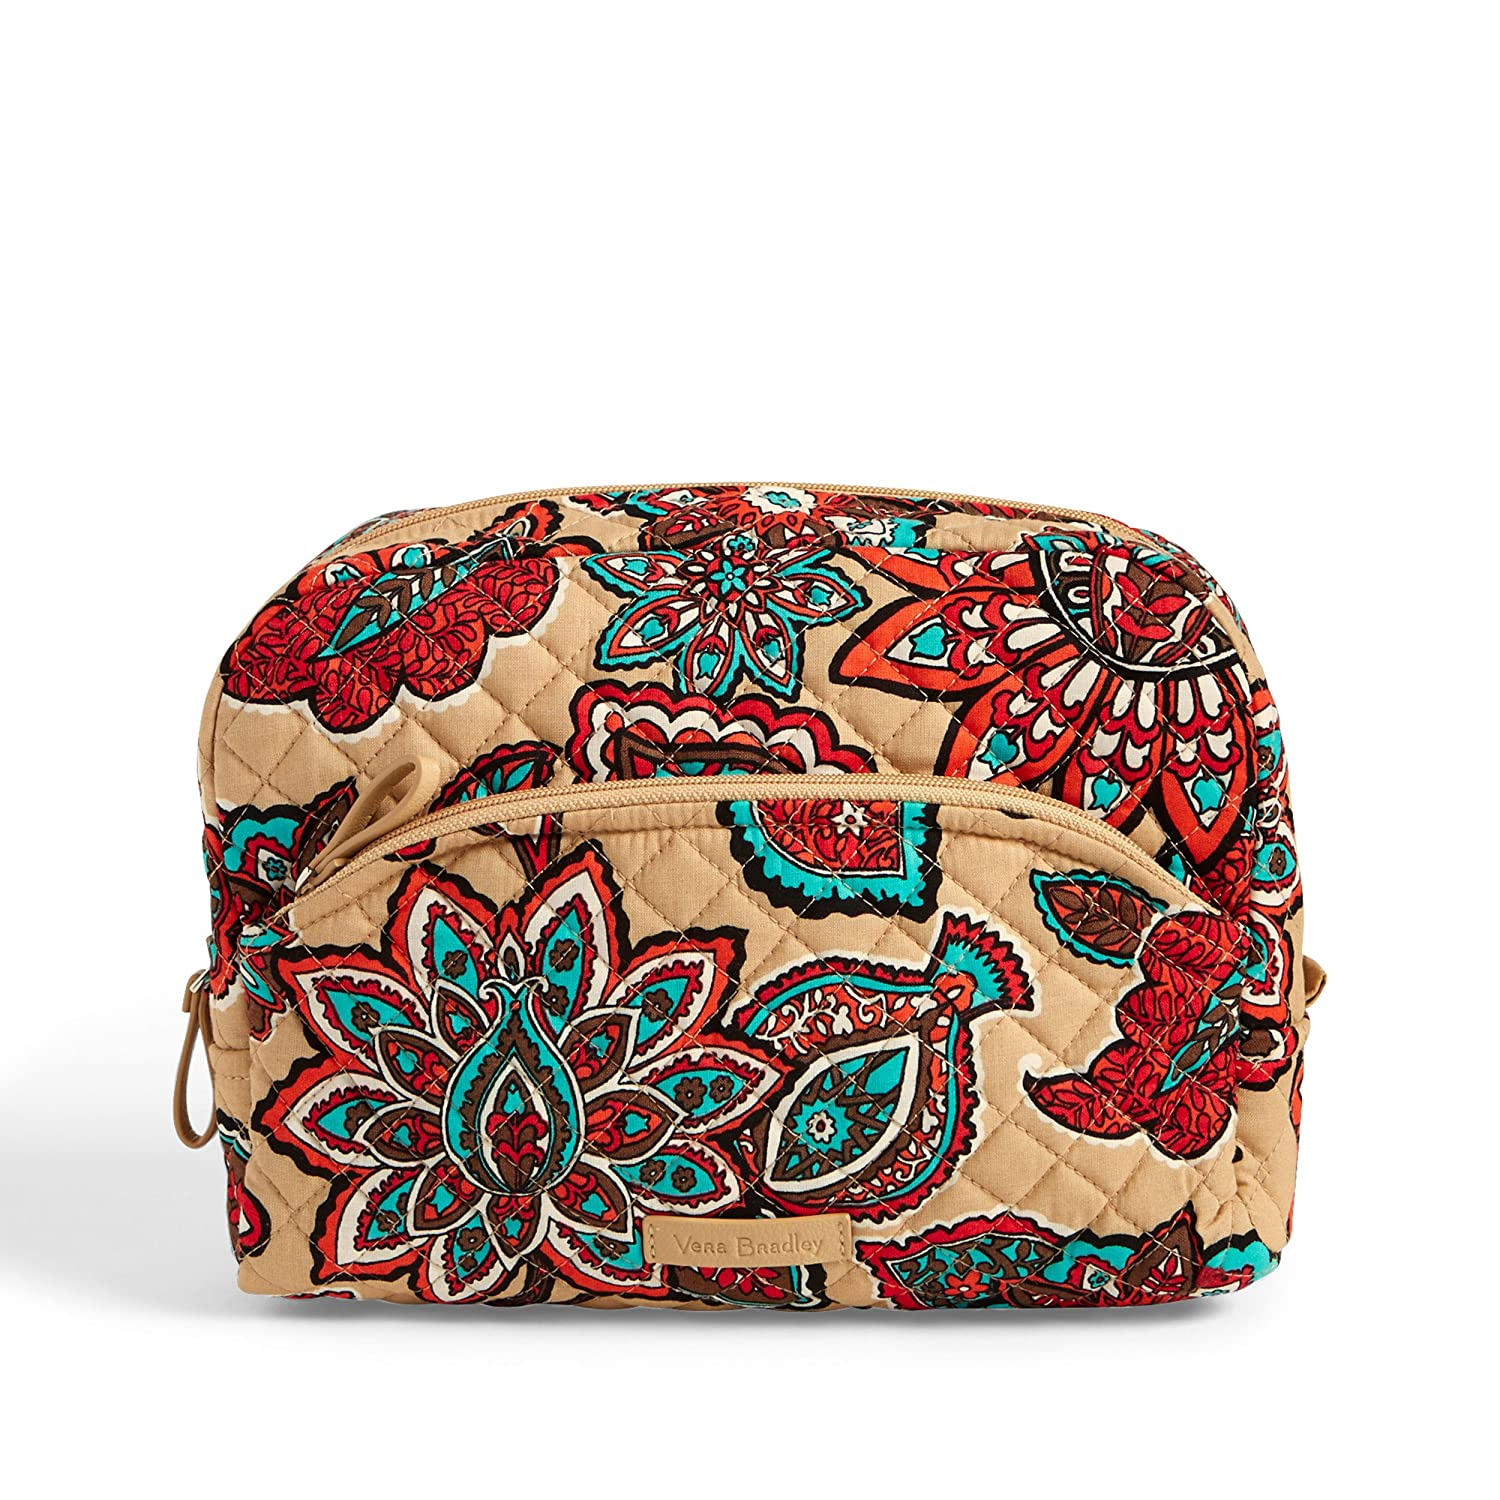 Vera Bradley Iconic Large Cosmetic, Signature Cotton Desert Floral +. Power 22517-K17